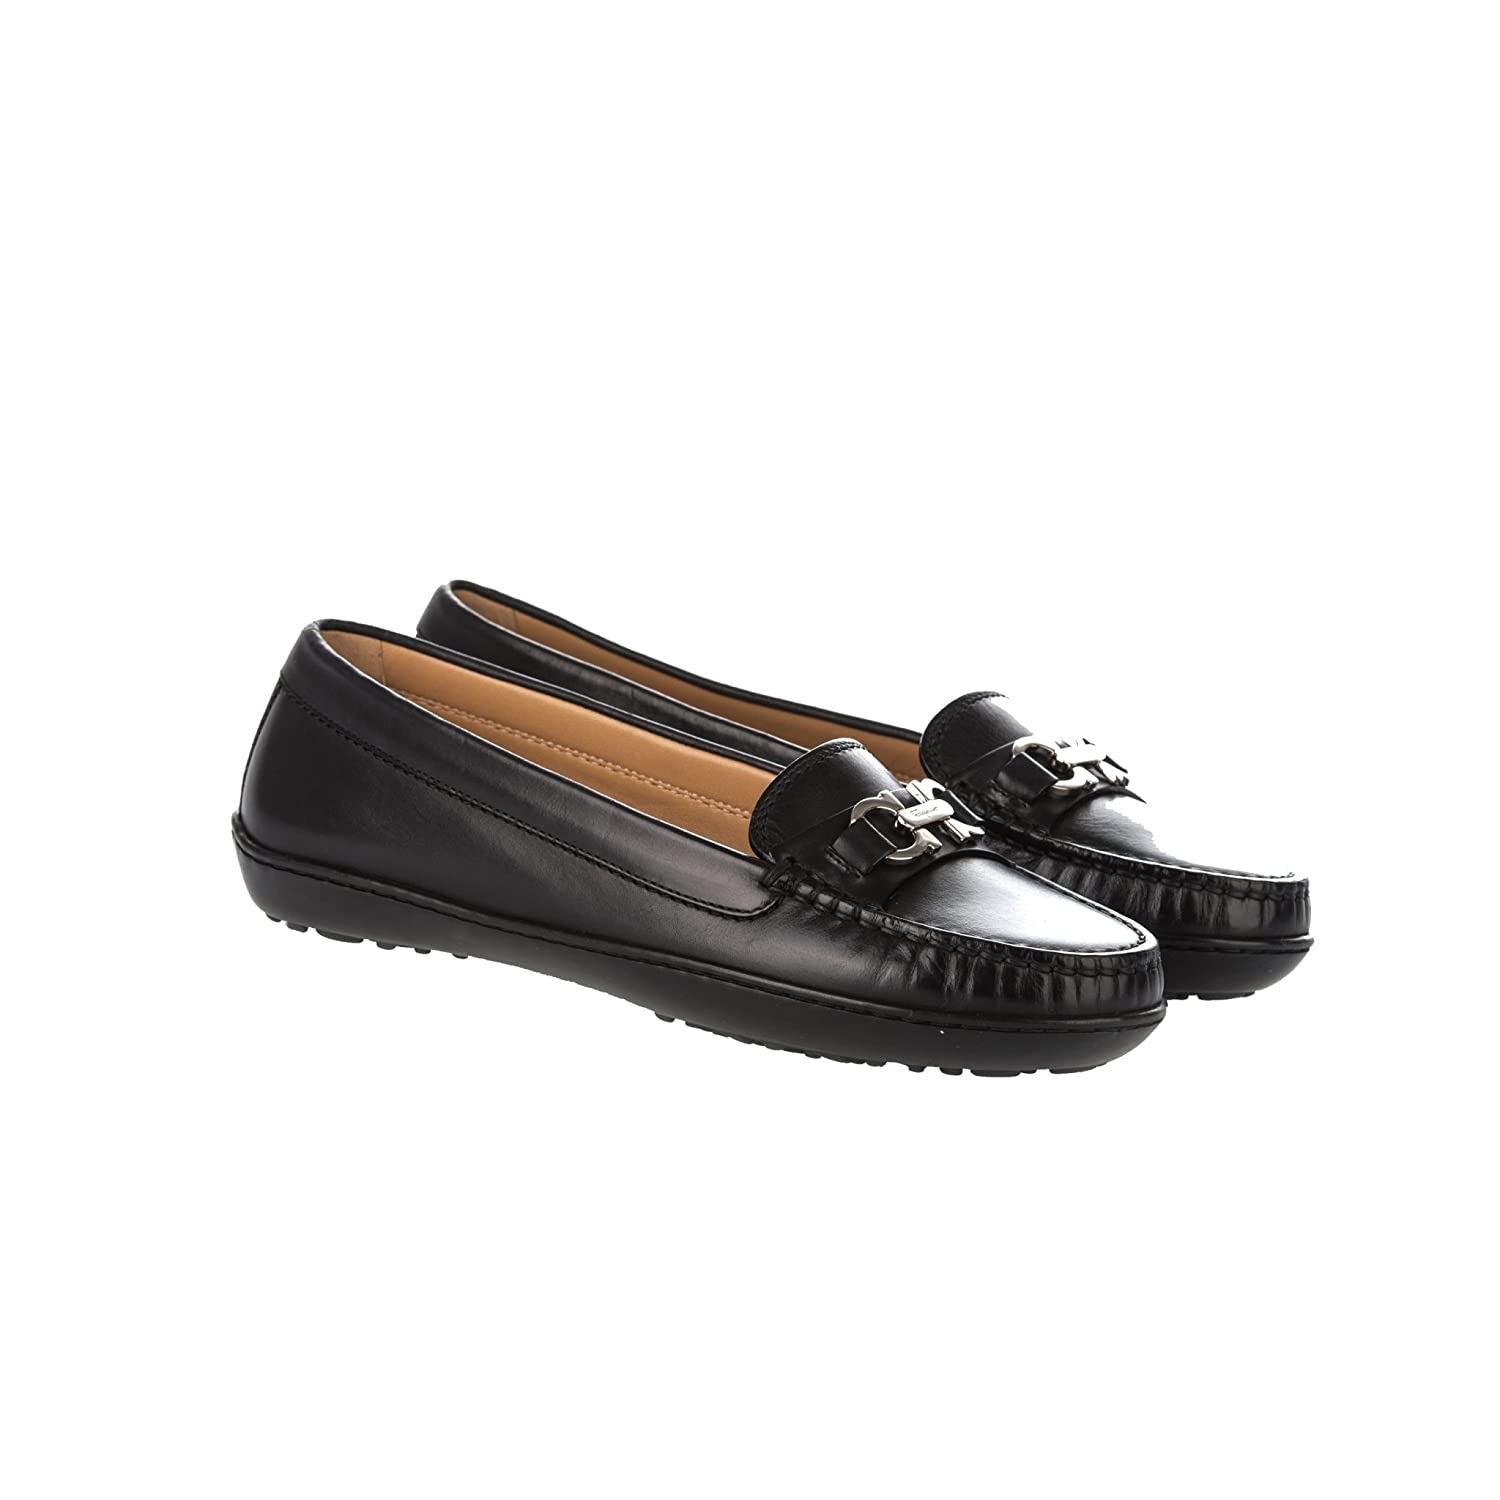 Salvatore Ferragamo - Mocasines para mujer negro negro IT - Marke Größe, color negro, talla 35 IT - Marke Größe 35: Amazon.es: Zapatos y complementos